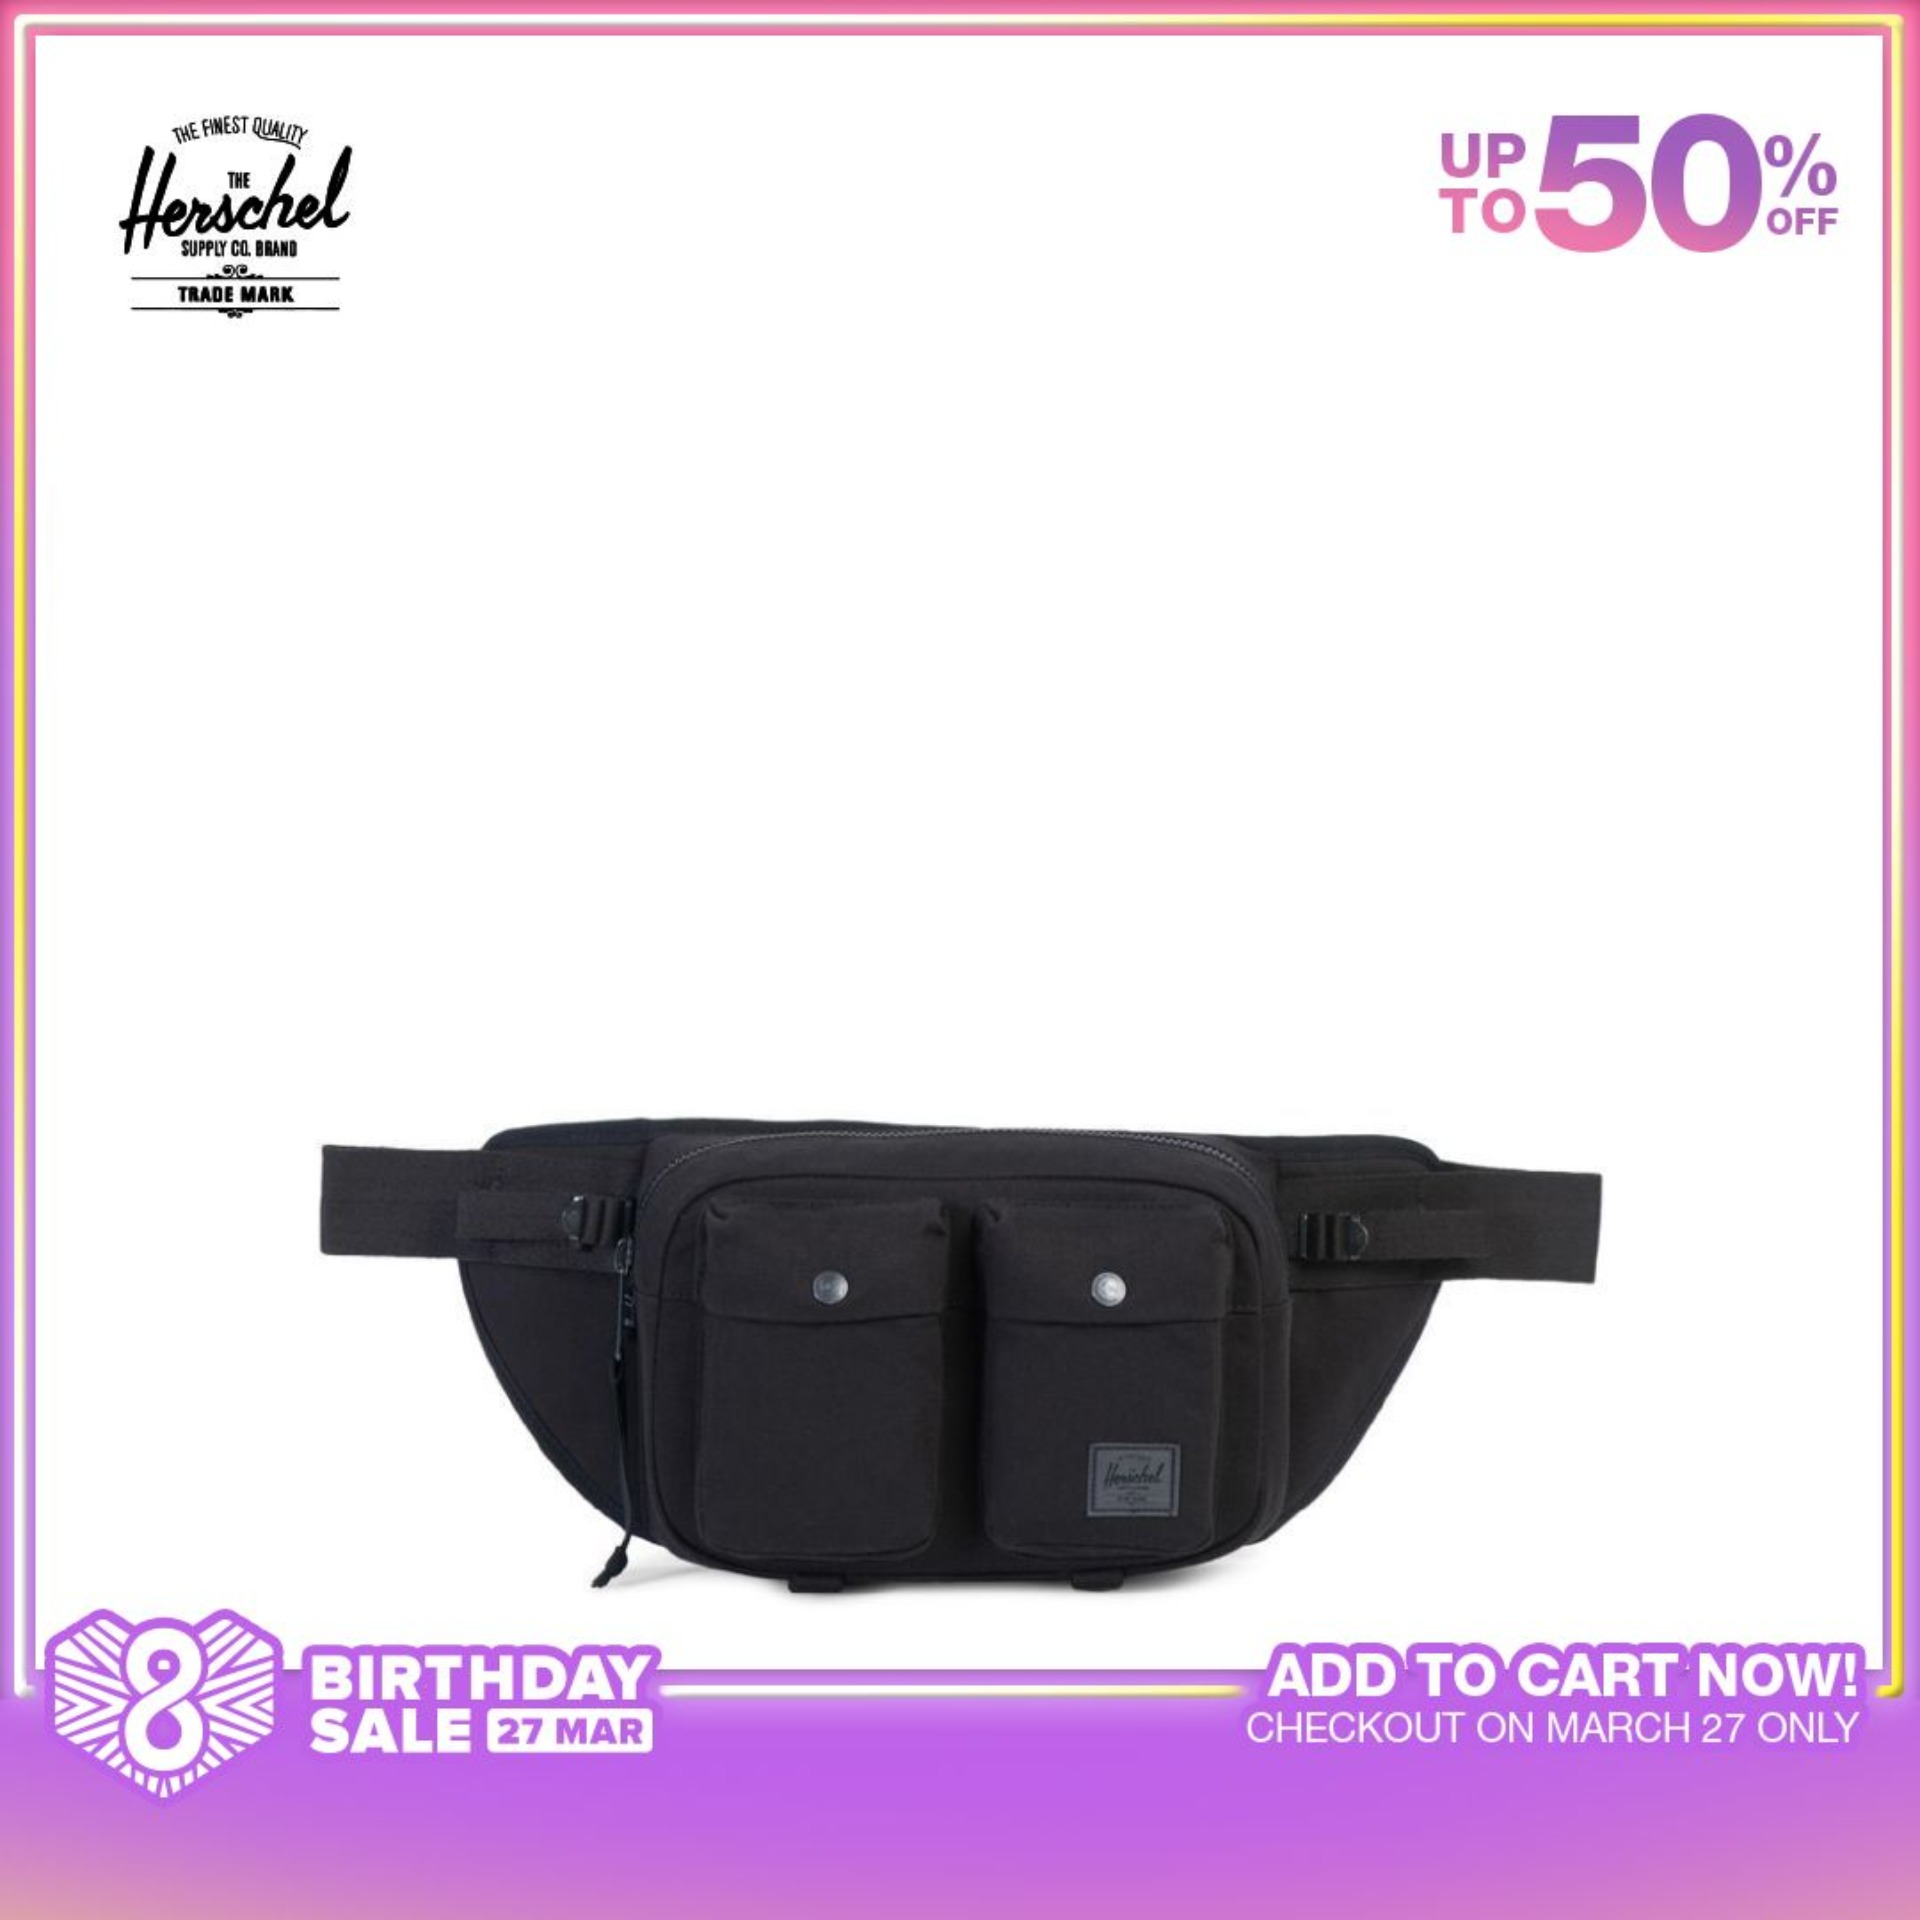 Geometric Colorful Unicorn Sport Waist Packs Fanny Pack Adjustable For Travel